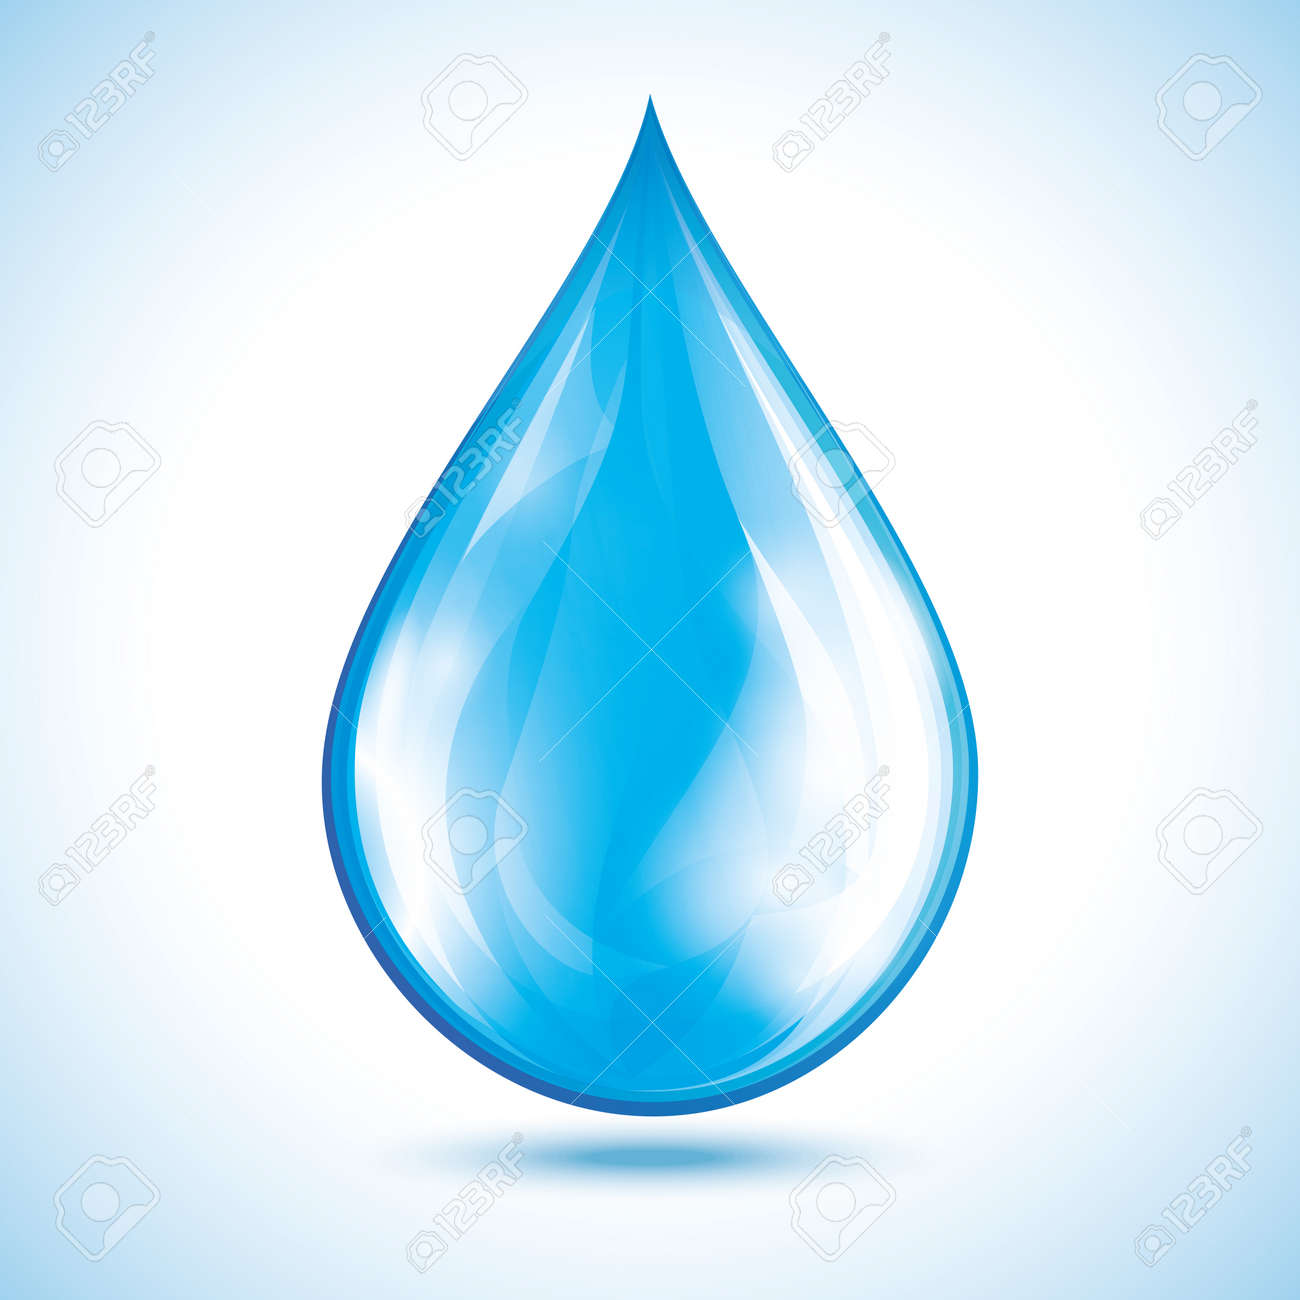 Blue glowing water drop isolated on white background. Nature object, design element for icon. - 57125205